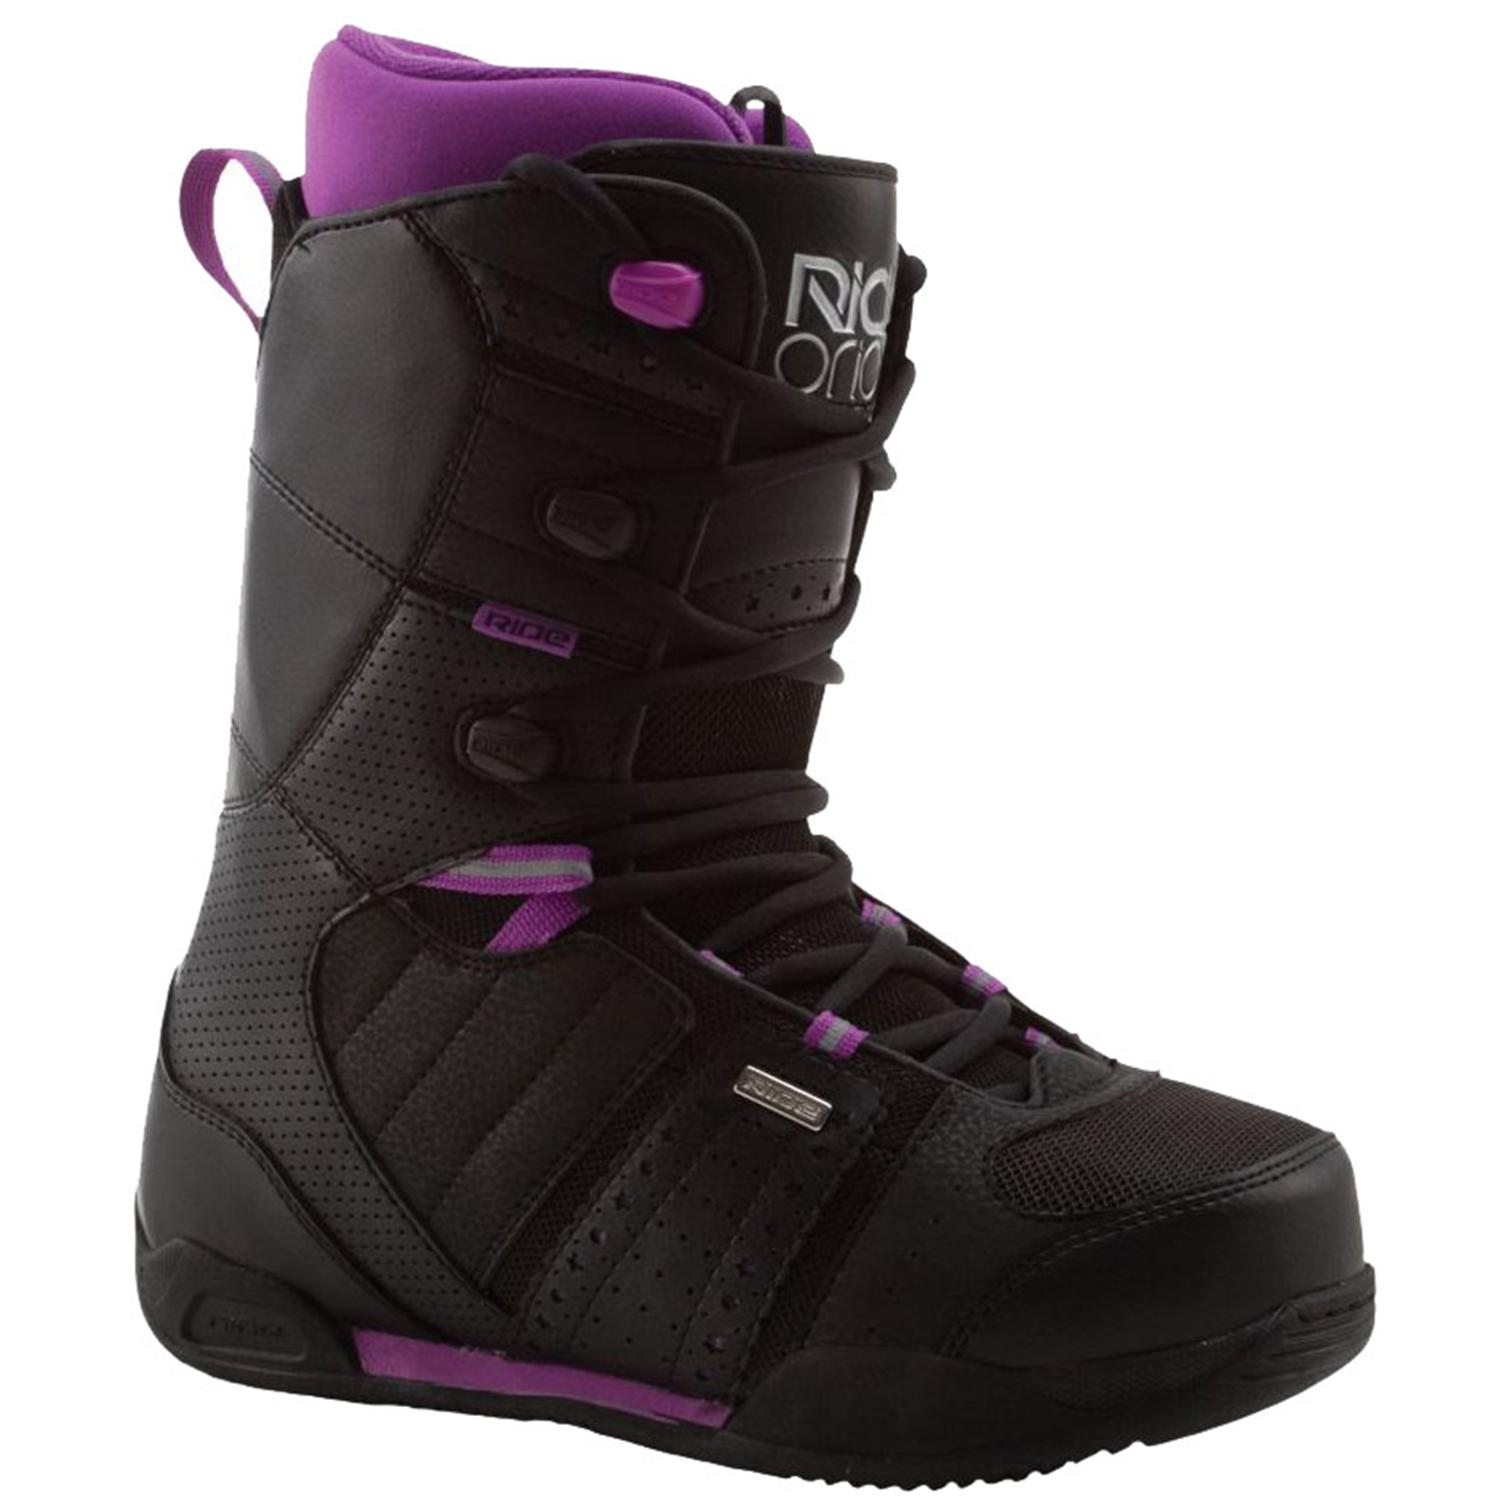 Womens Ride Snowboard Boots 27